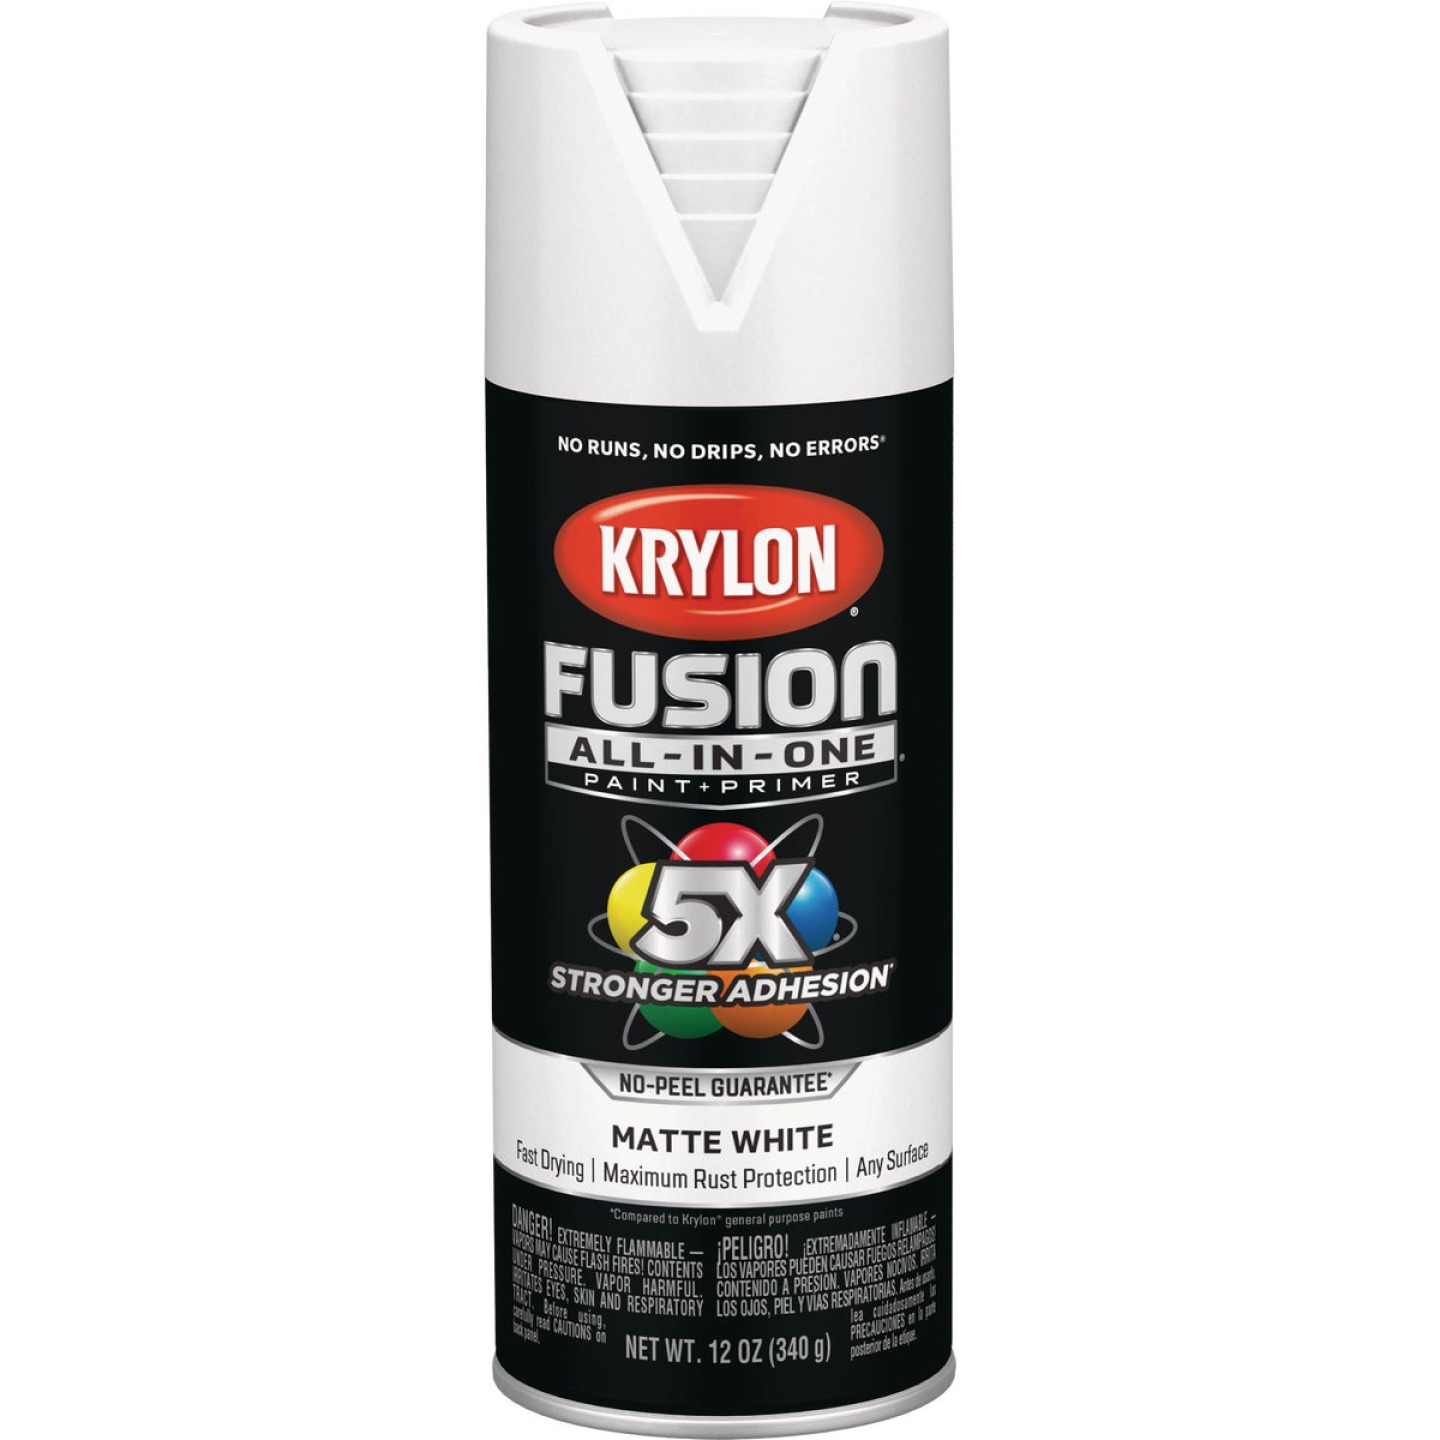 Krylon Fusion All-In-One Matte Spray Paint & Primer, White Image 1